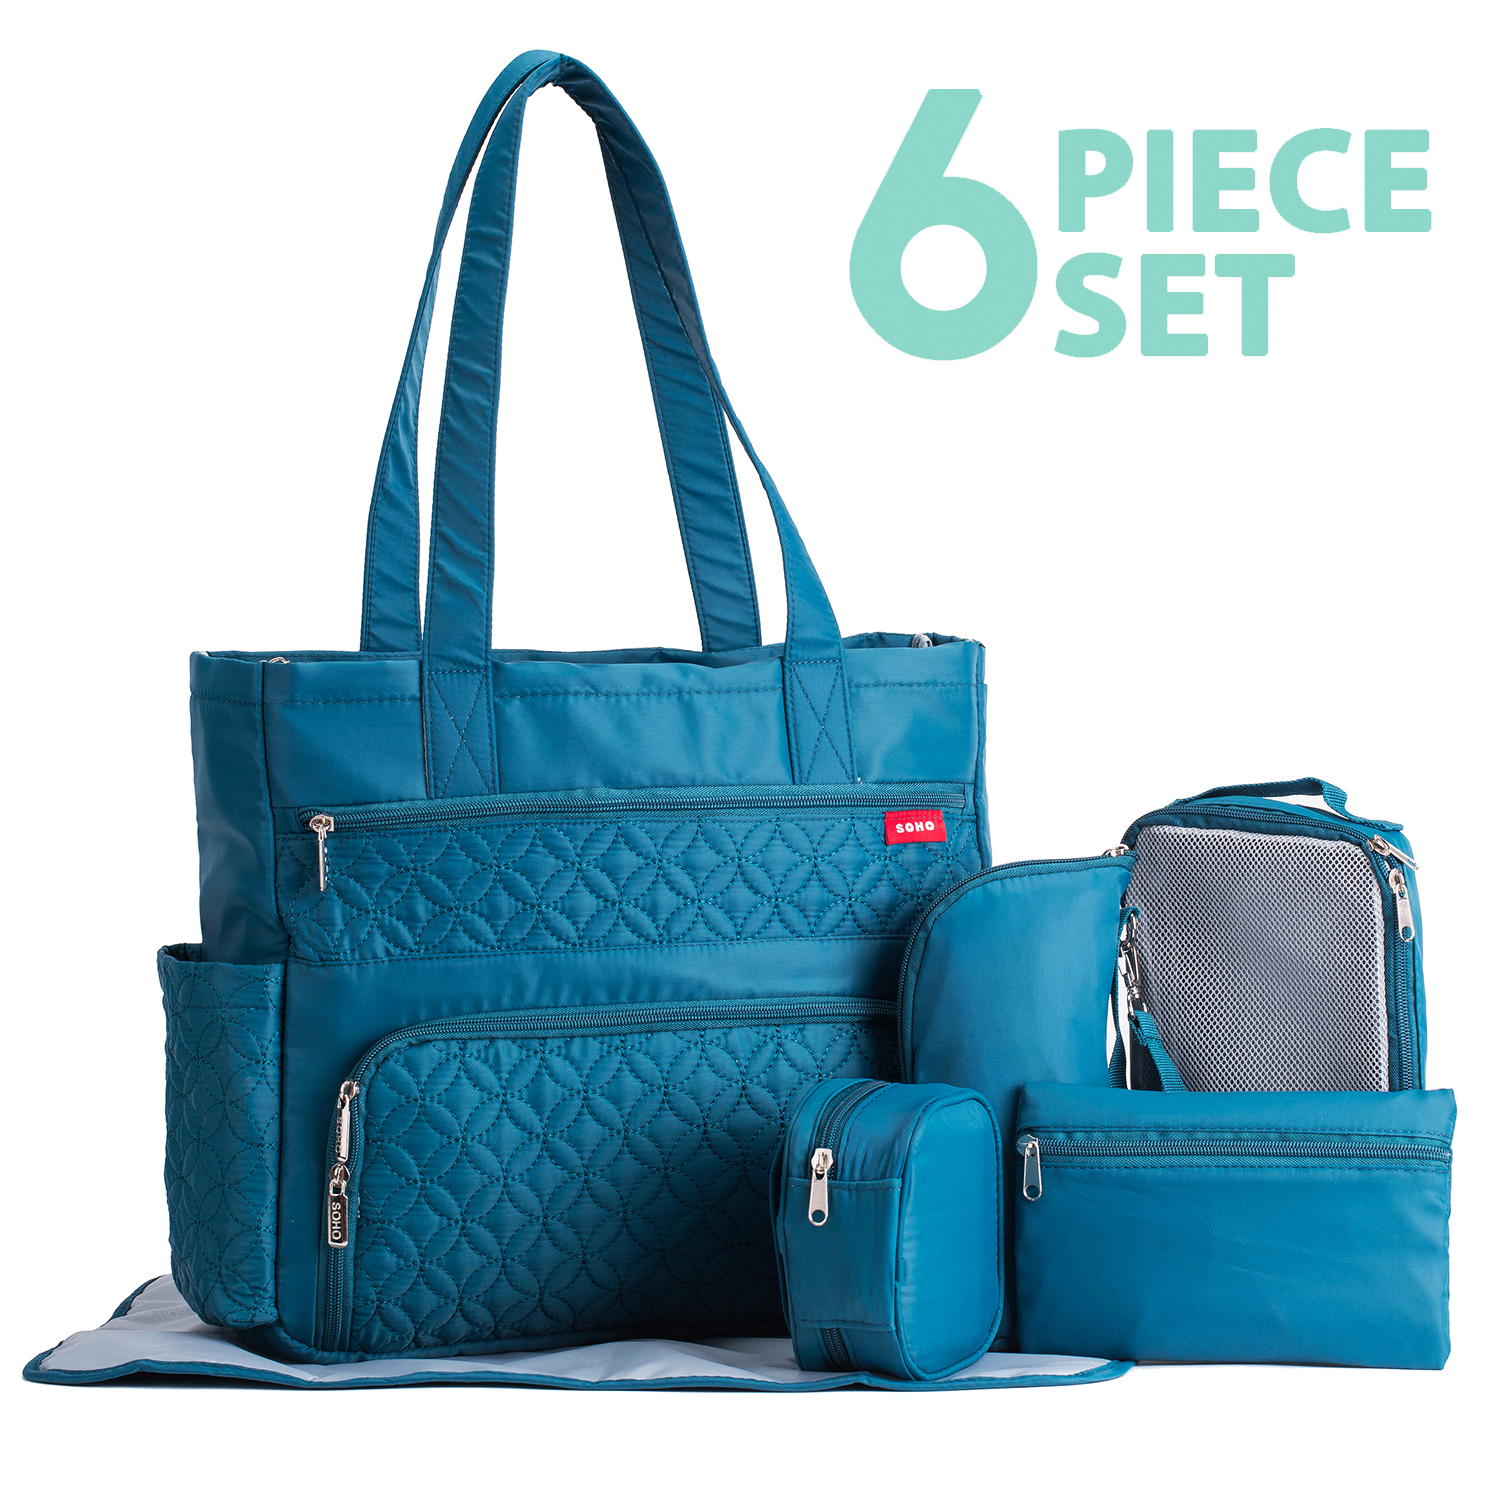 SoHo Collection, Williamsburg 6 pieces Diaper Tote Bag set * Limited Tme Offer! * (Cambridge Teal)